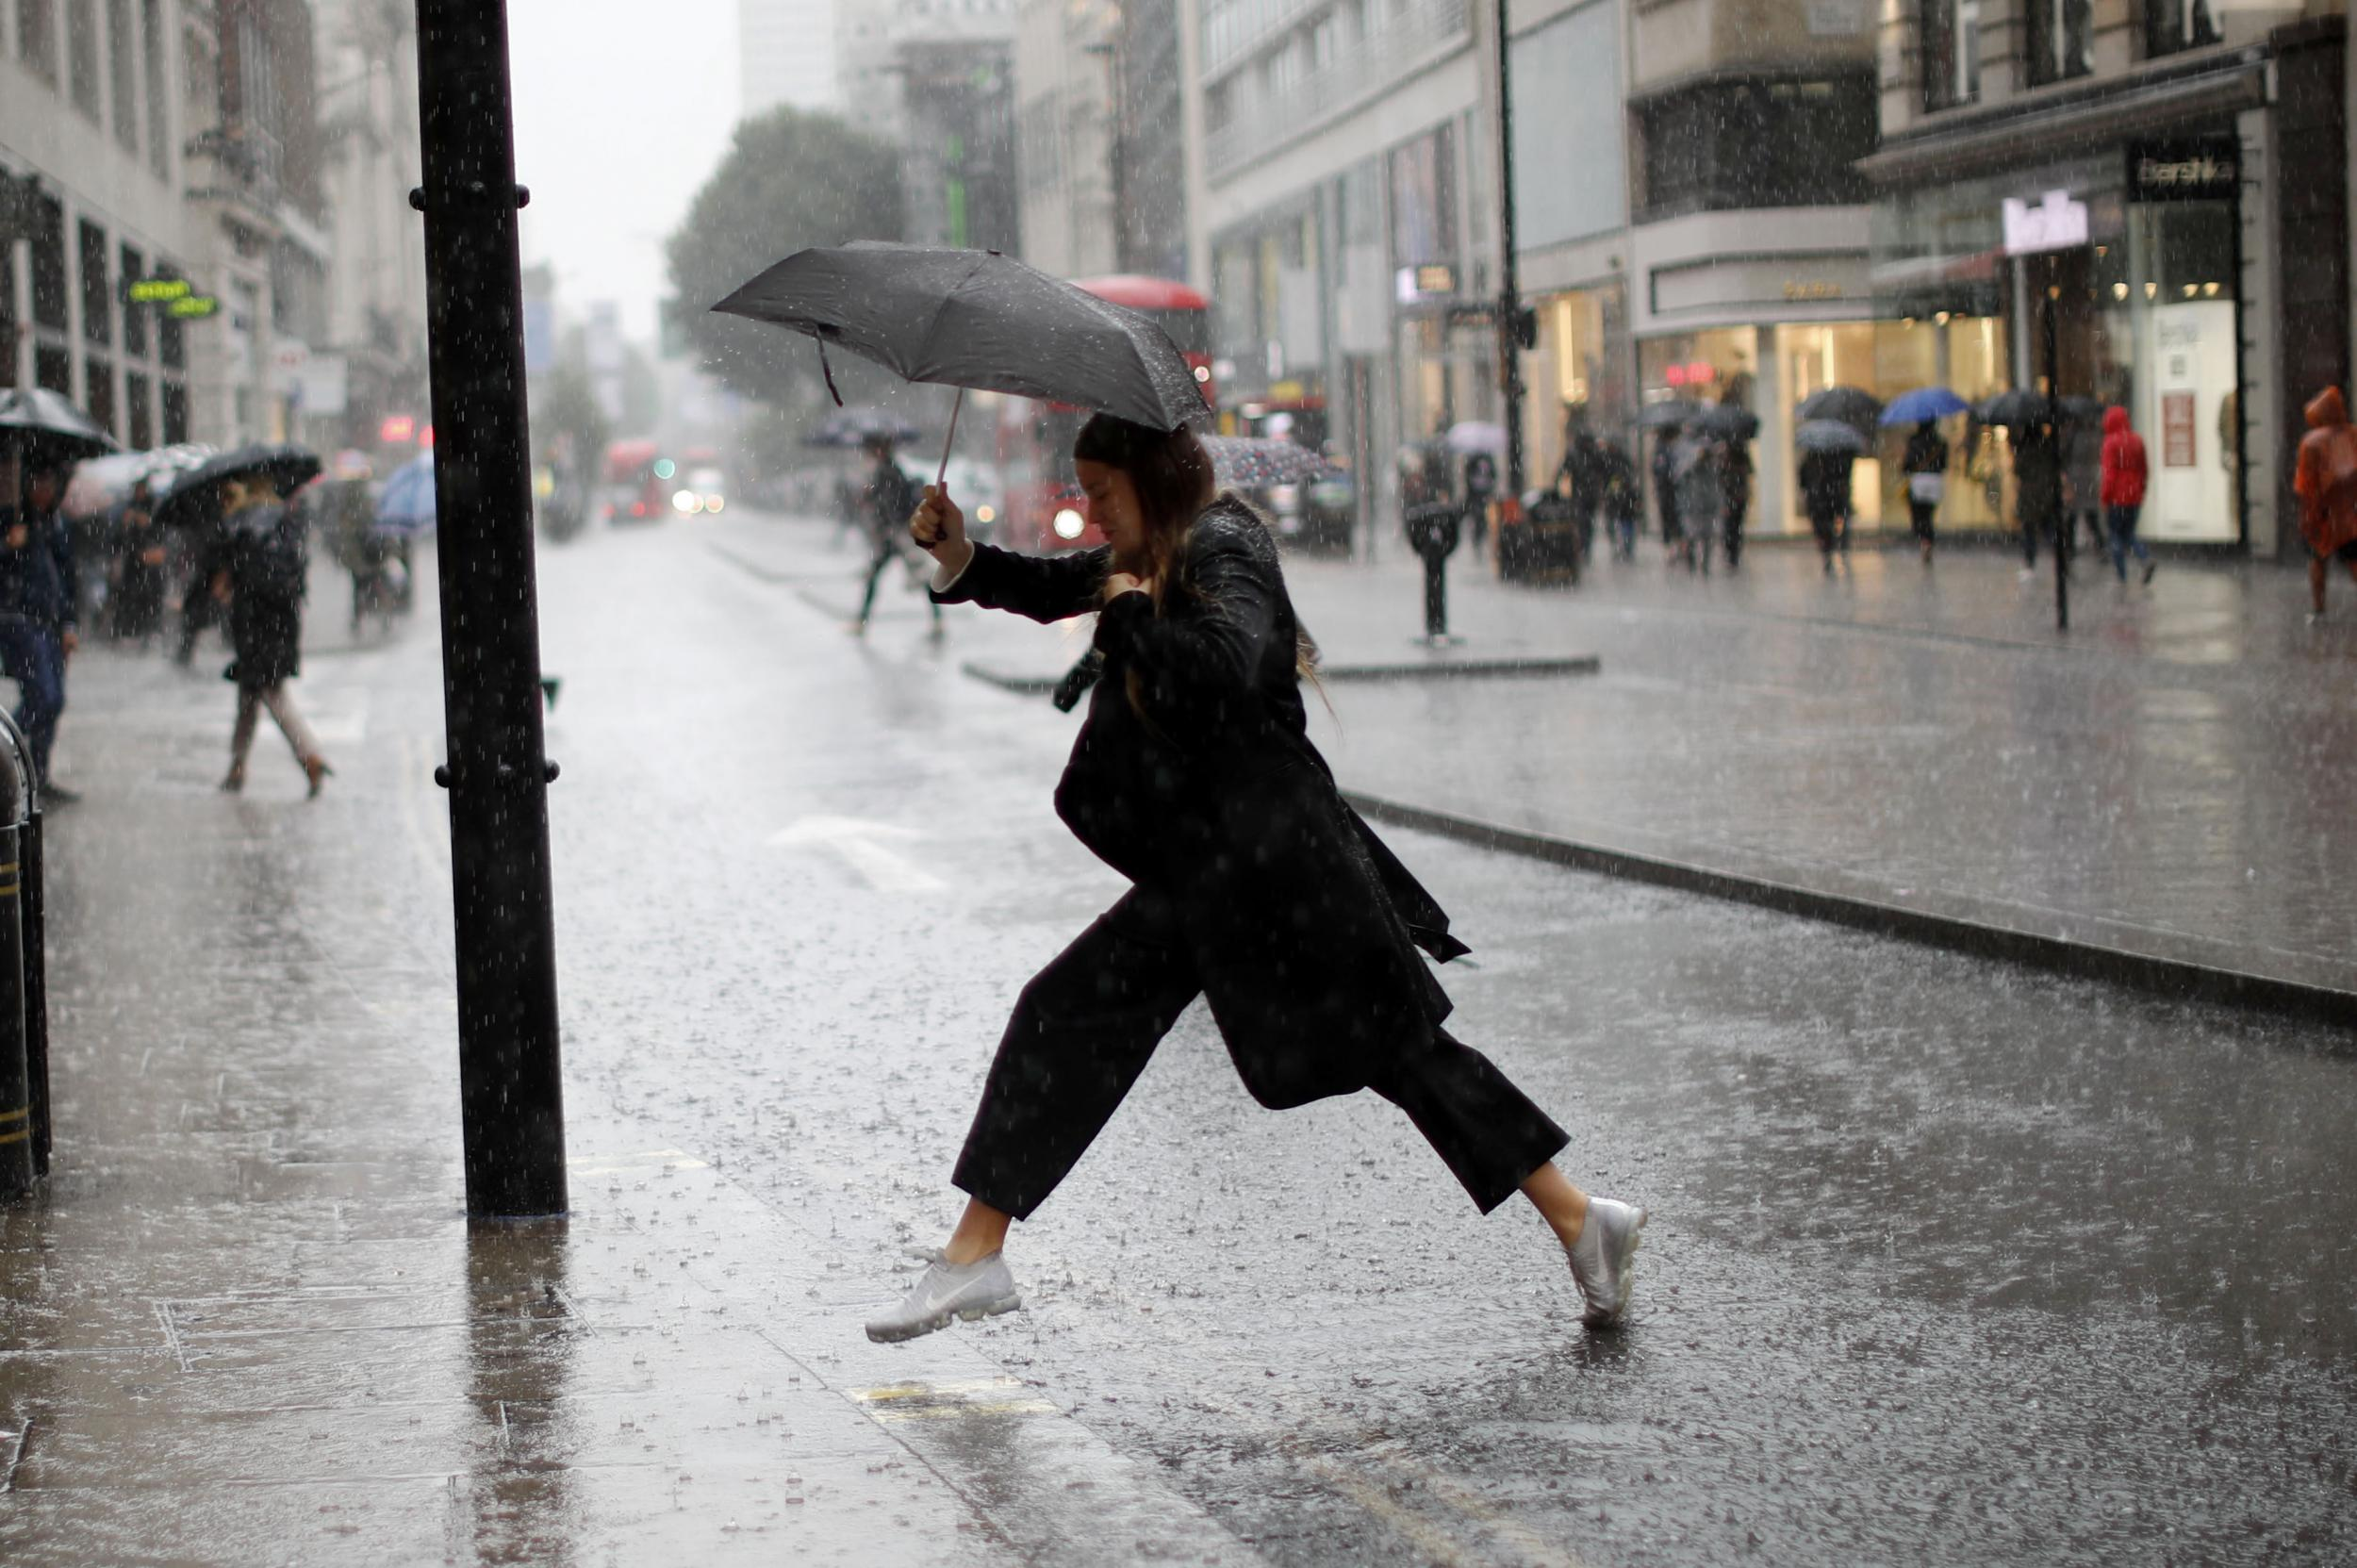 European Monsoon – What, Why, Where, When, How?